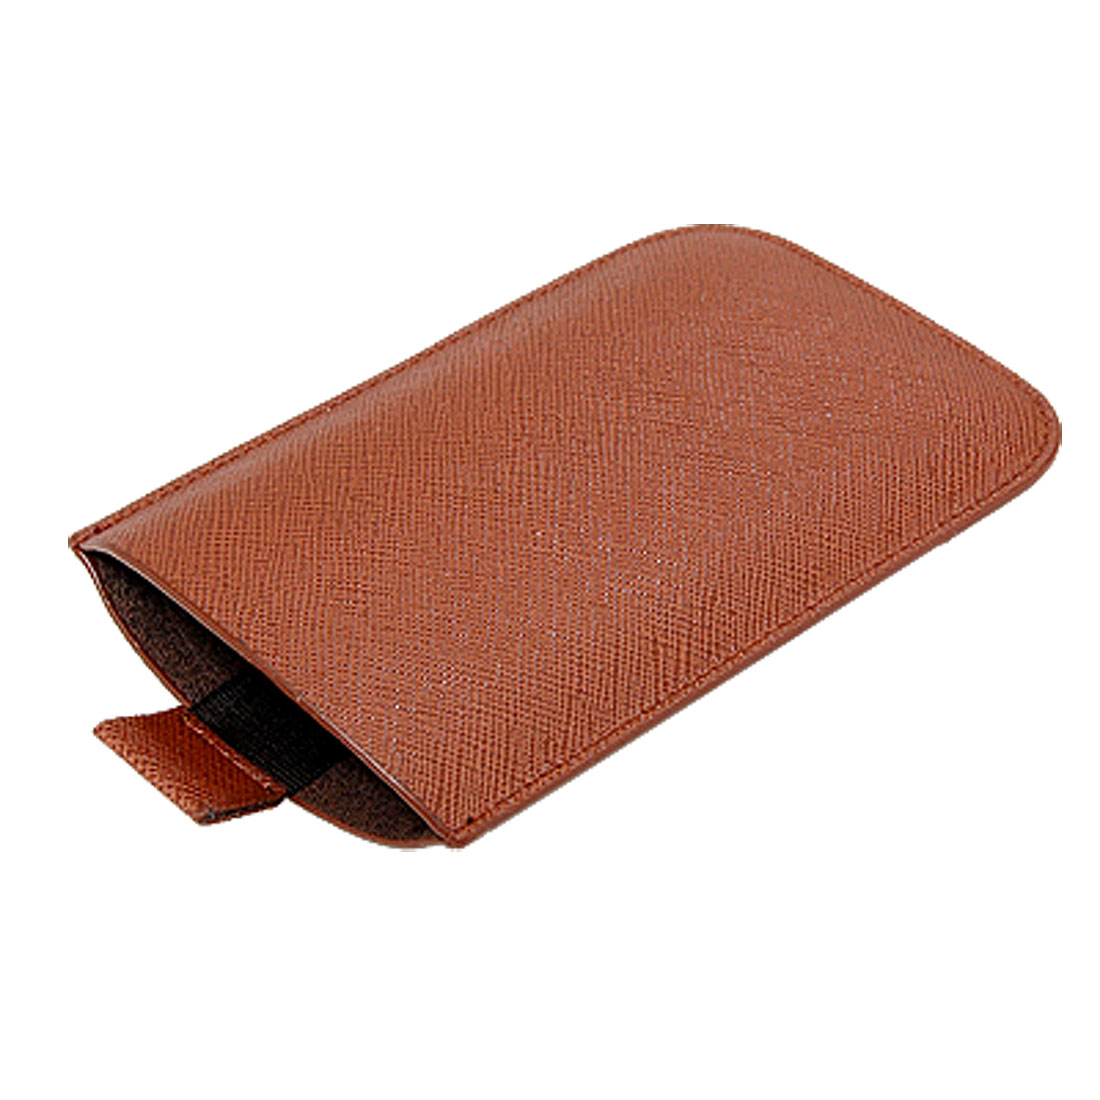 Brown Textured Faux Leather Pull Bag Pouch for iPhone 3G